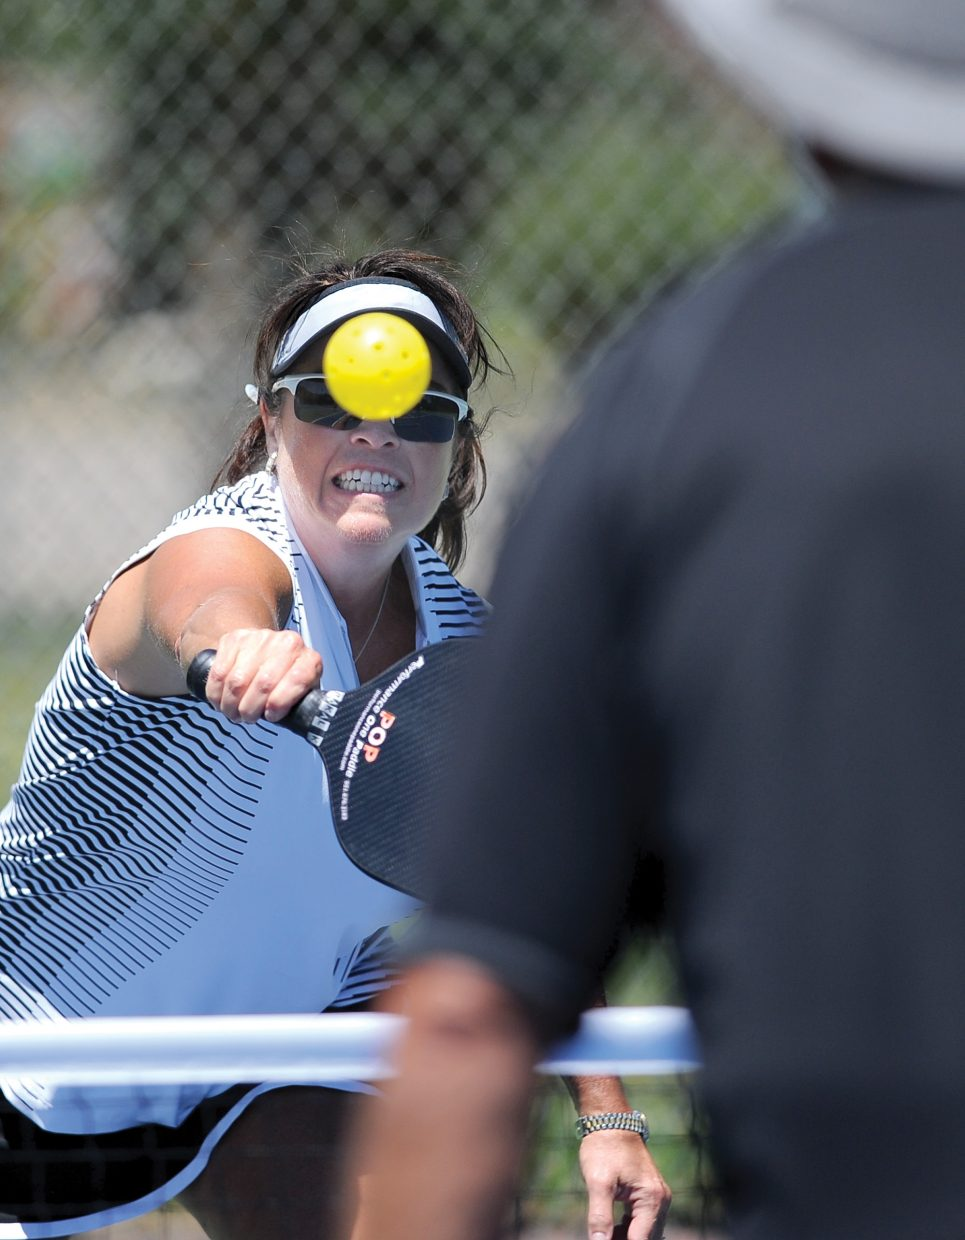 Michelle Diehl returns a shot from Gary Fey while playing pickleball Tuesday afternoon at Howelsen Hill. The city of Steamboat Springs recently painted pickleball lines on the tennis courts, and several members of the local Pickleball Club came out to play Tuesday.